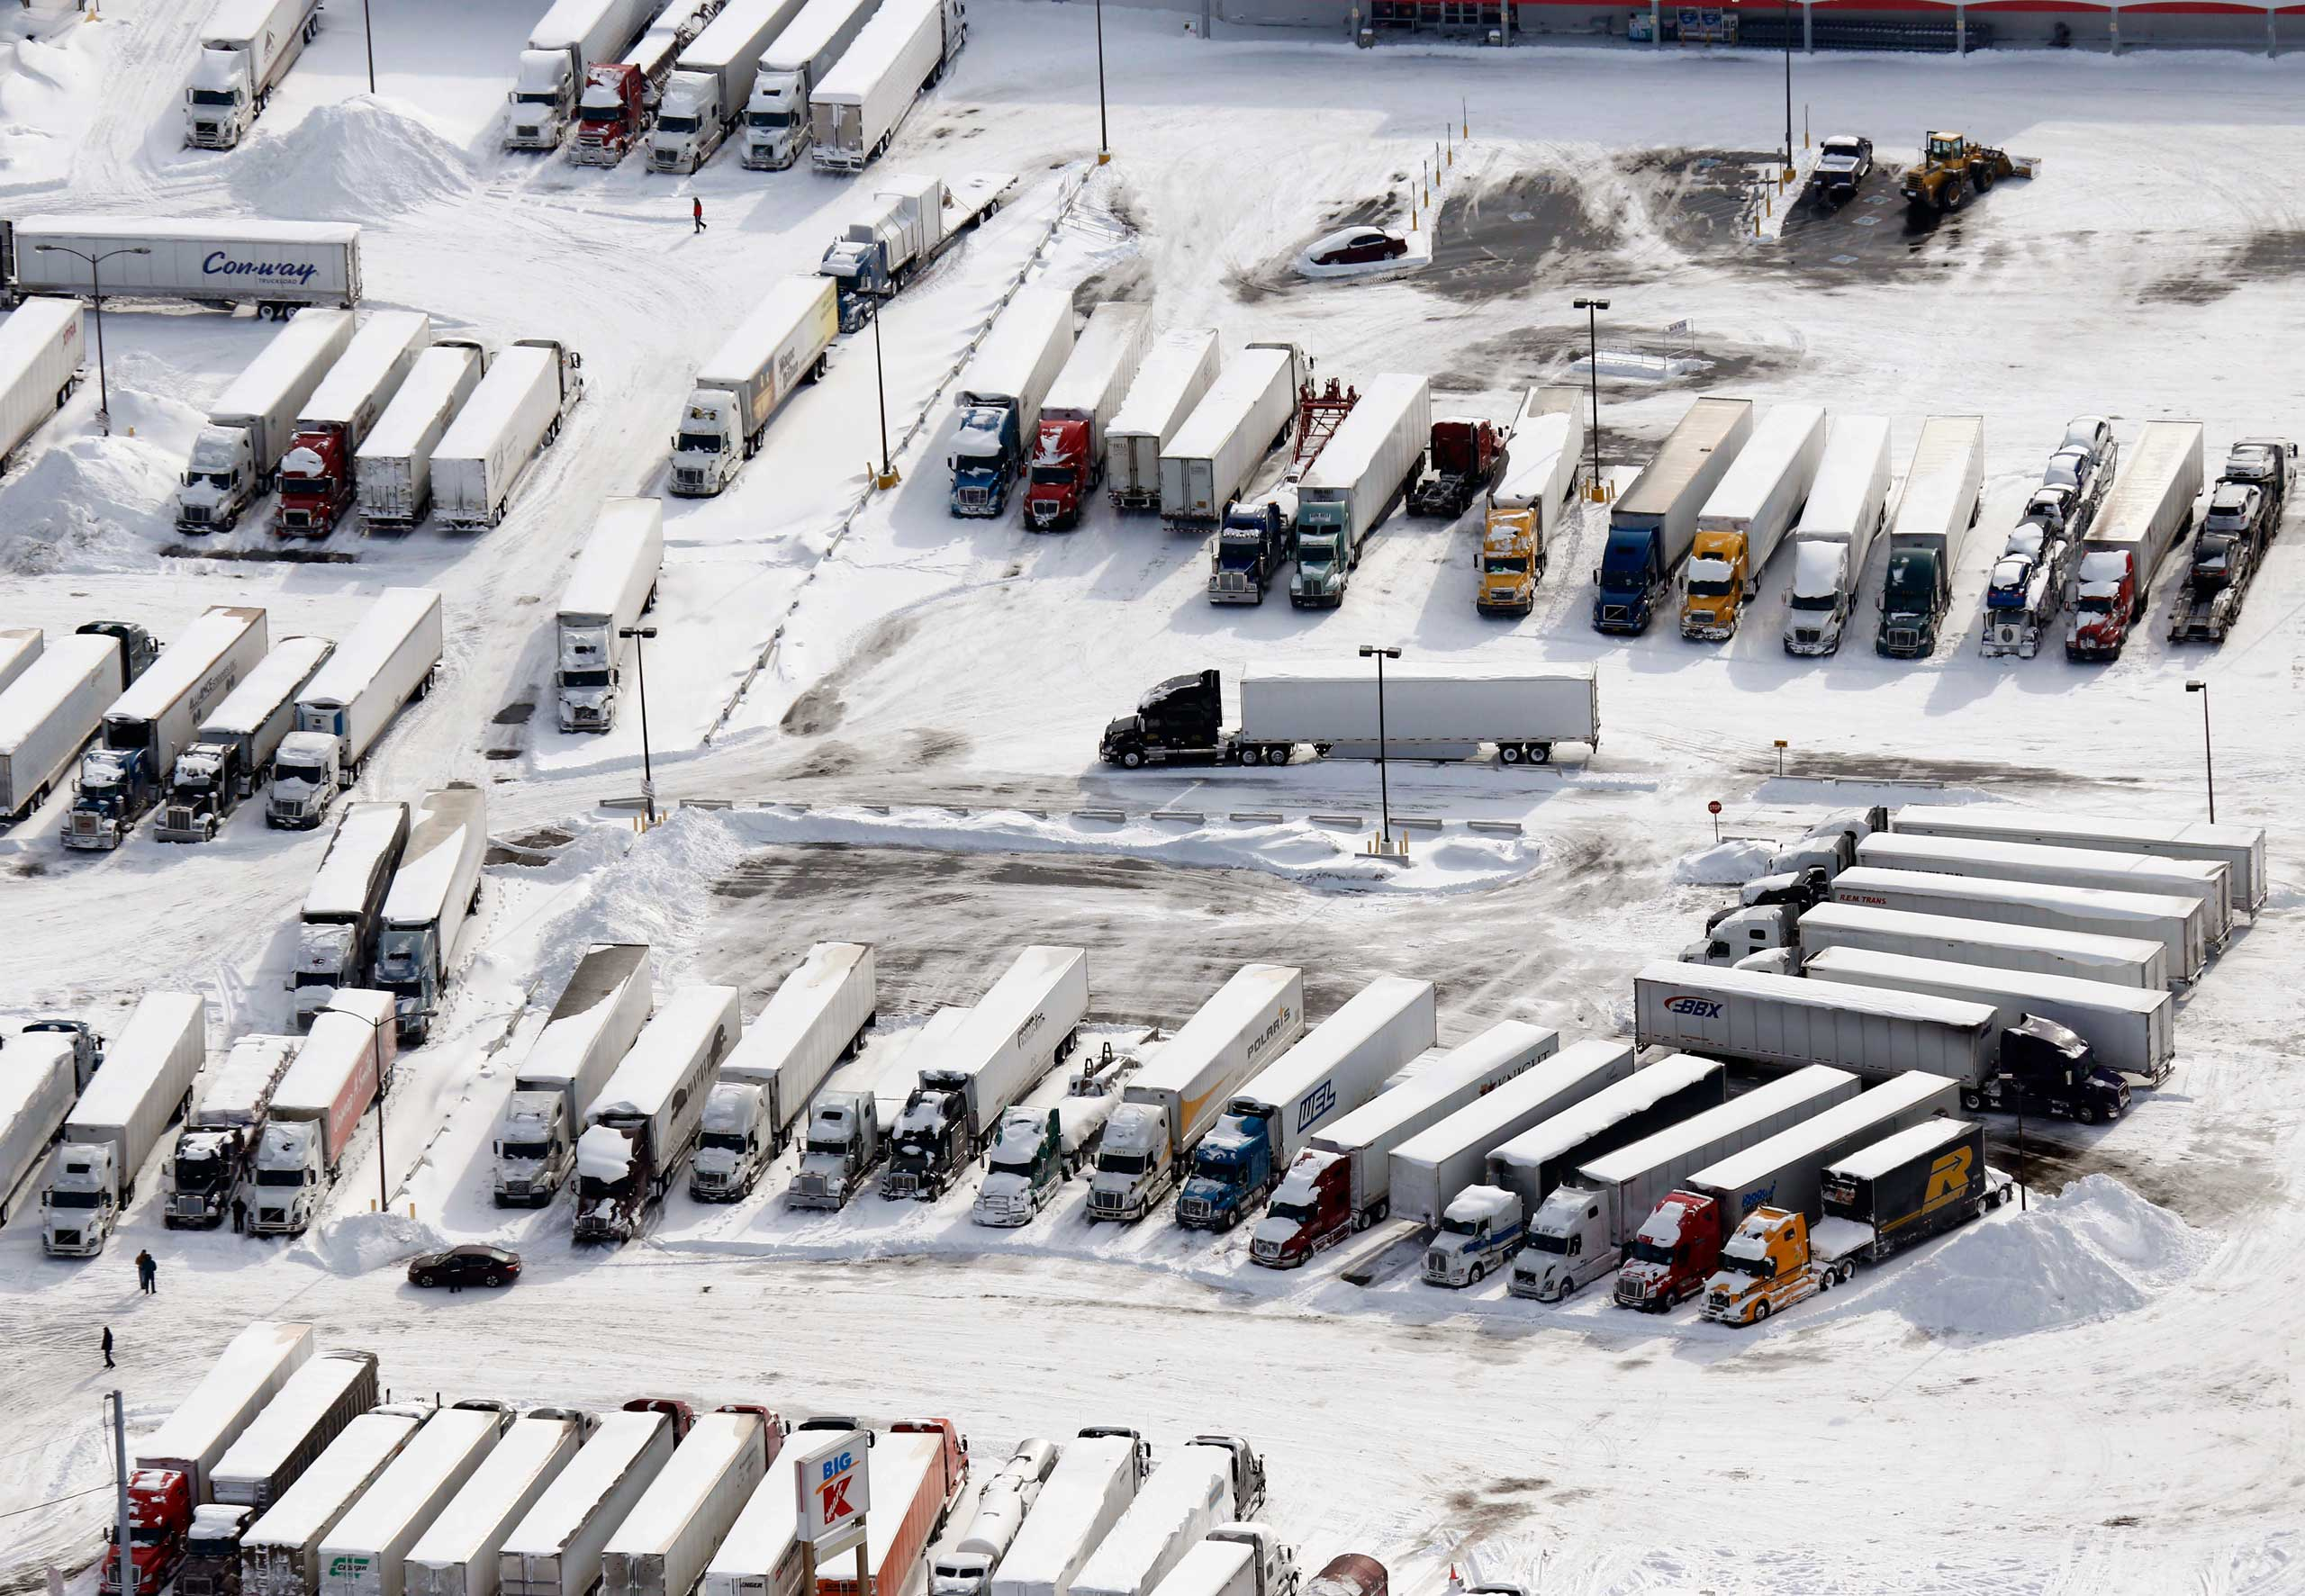 Trucks are parked at Jim's Truck Stop in Cheektowaga, N.Y. on Nov. 19, 2014.